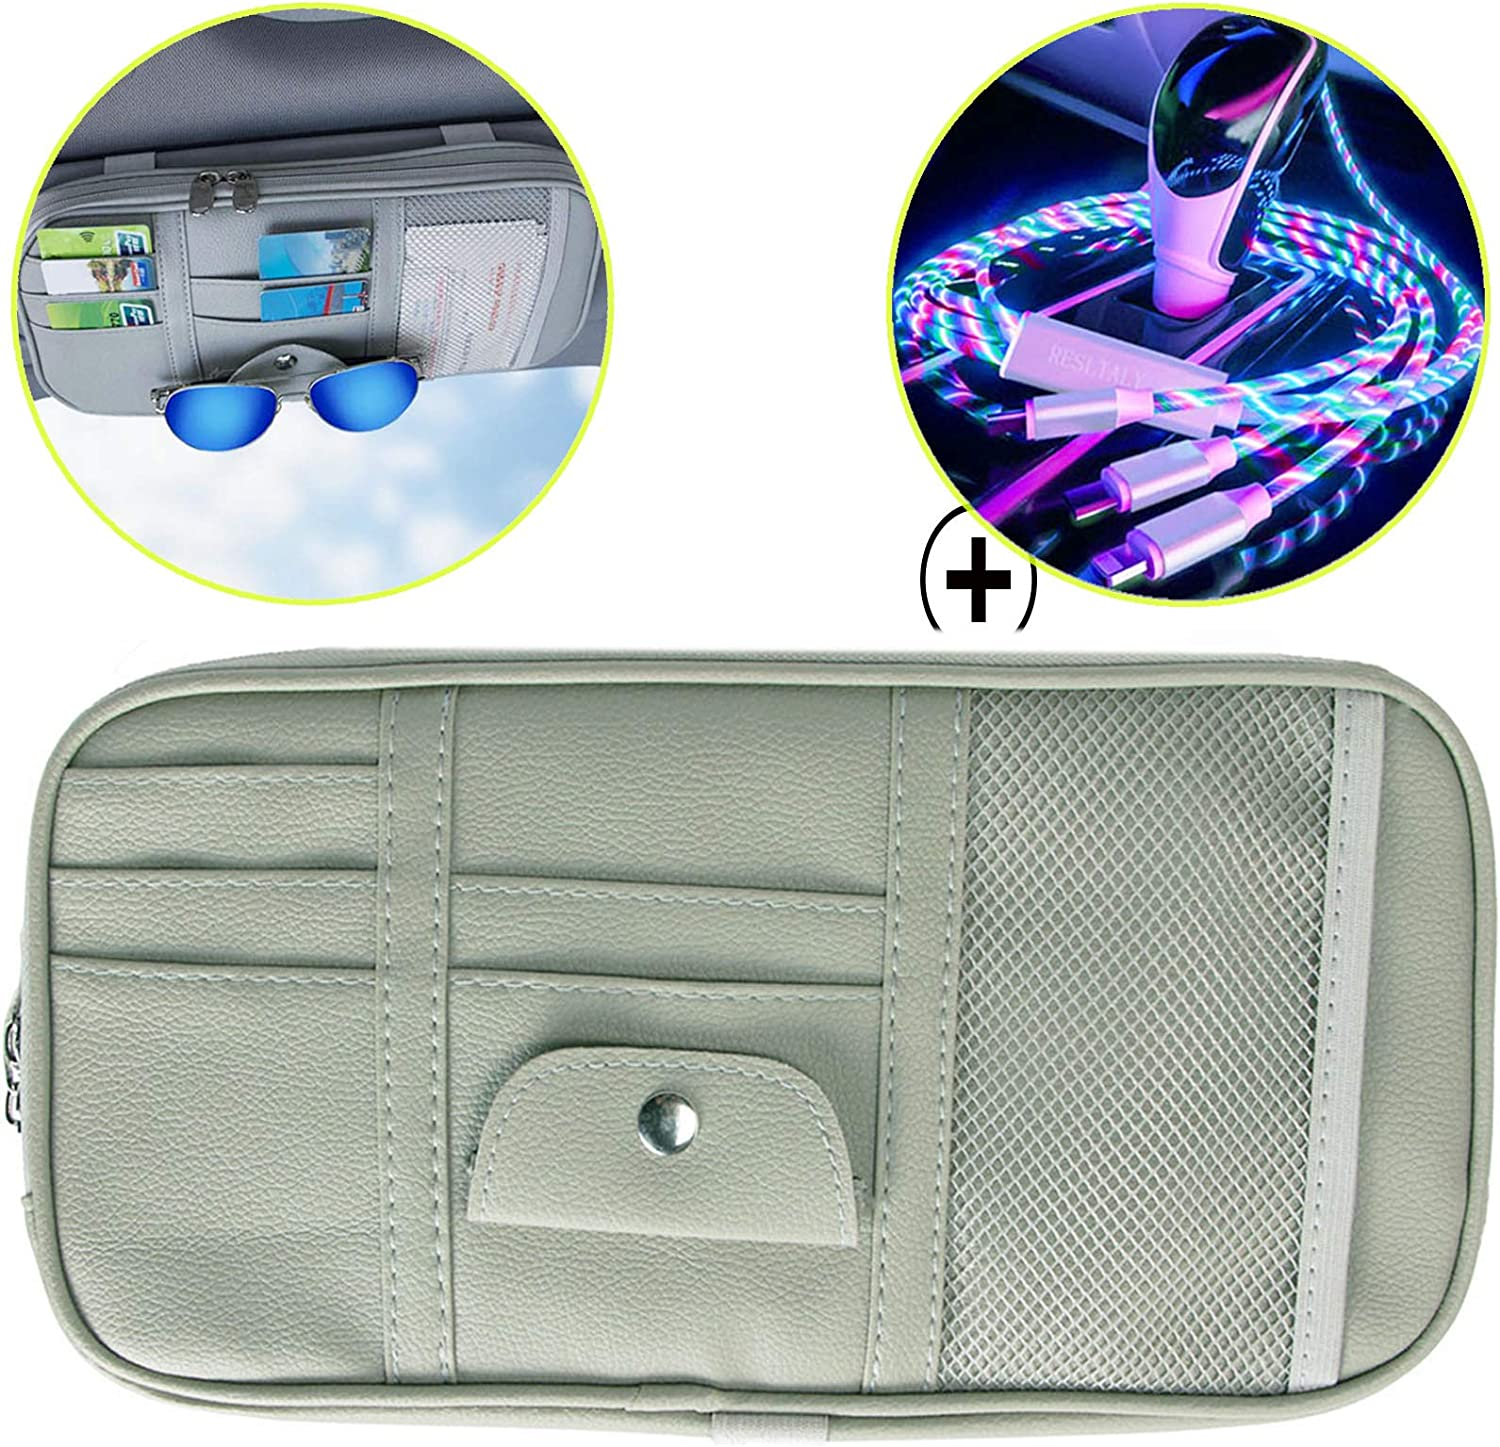 PP Board Car Storage Accessories Gray RESLTALY Car Sun Visor Storage Bag Tight Double Zipper Bag 9 Leather Texture Design Storage Compartments